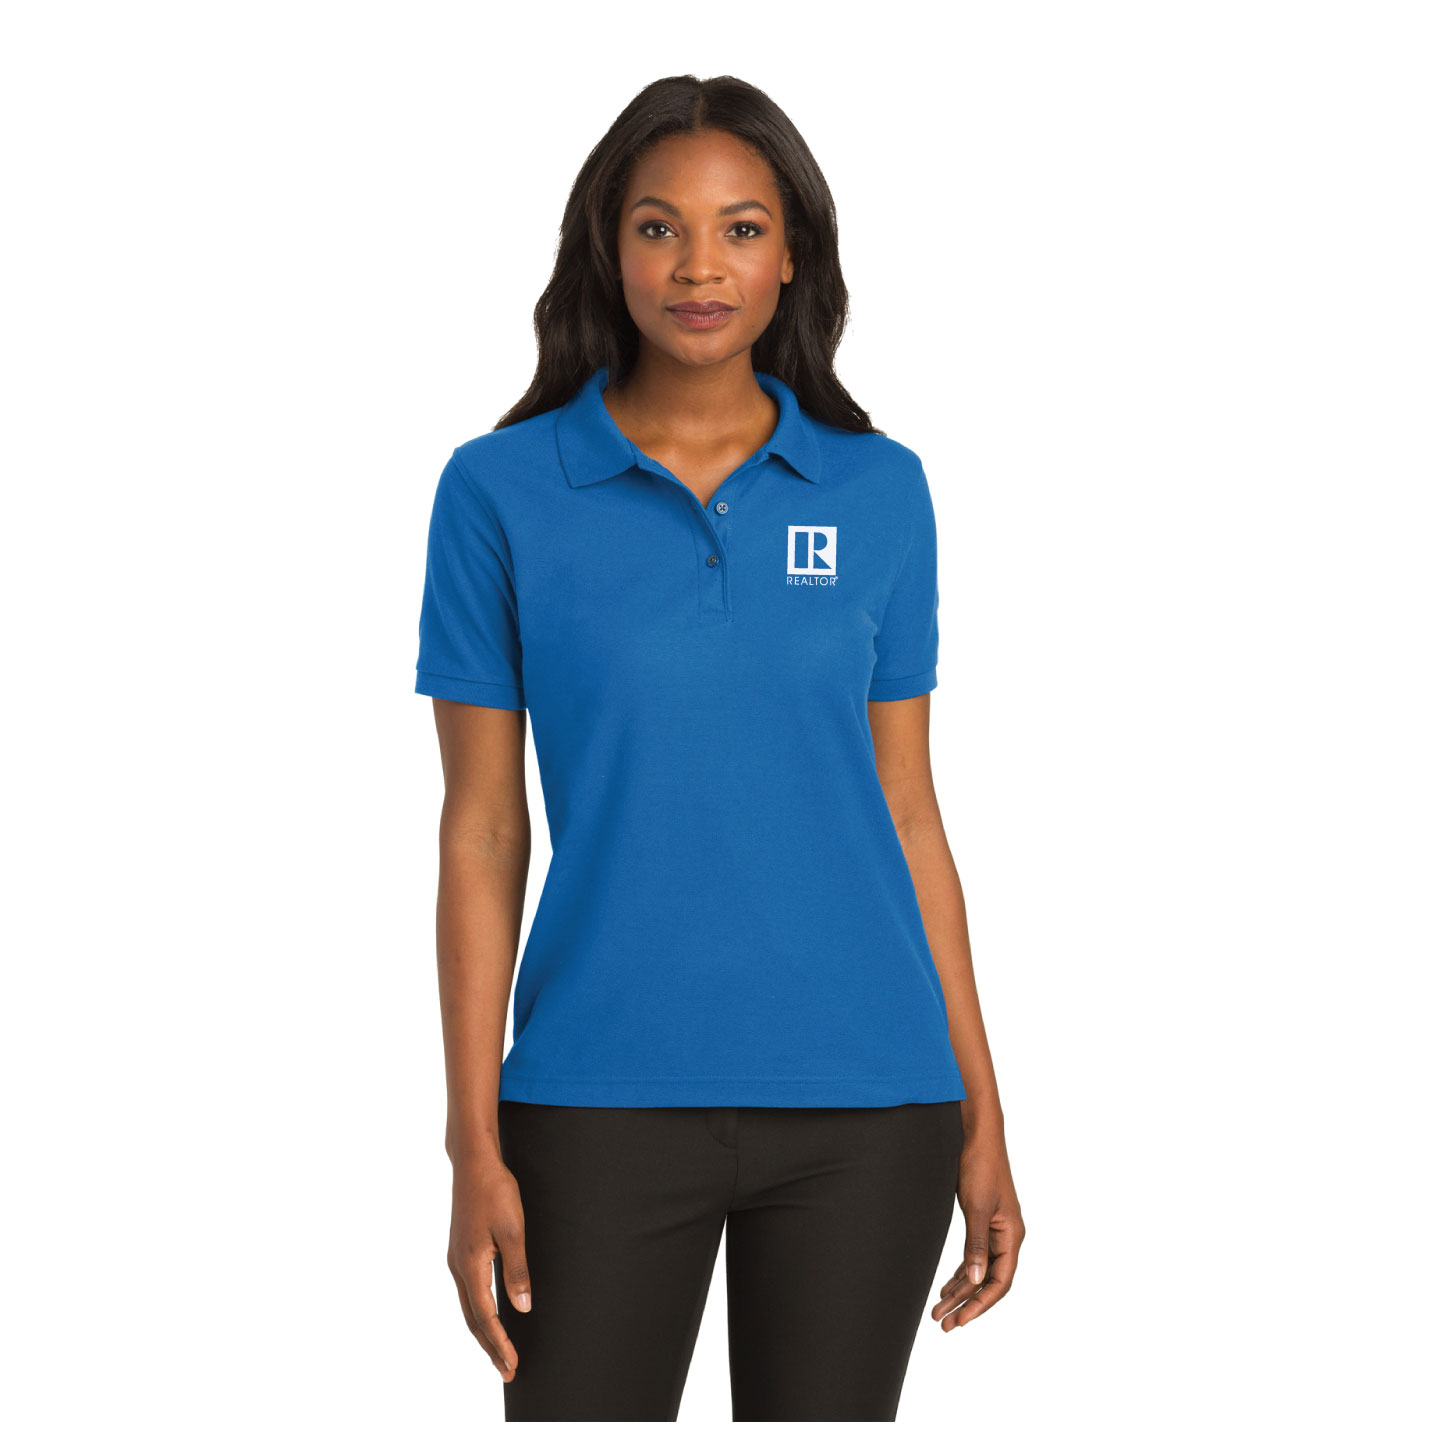 Ladies Pique Polo Shirt Golfs, Shirts, Collared, Polos, Plackets